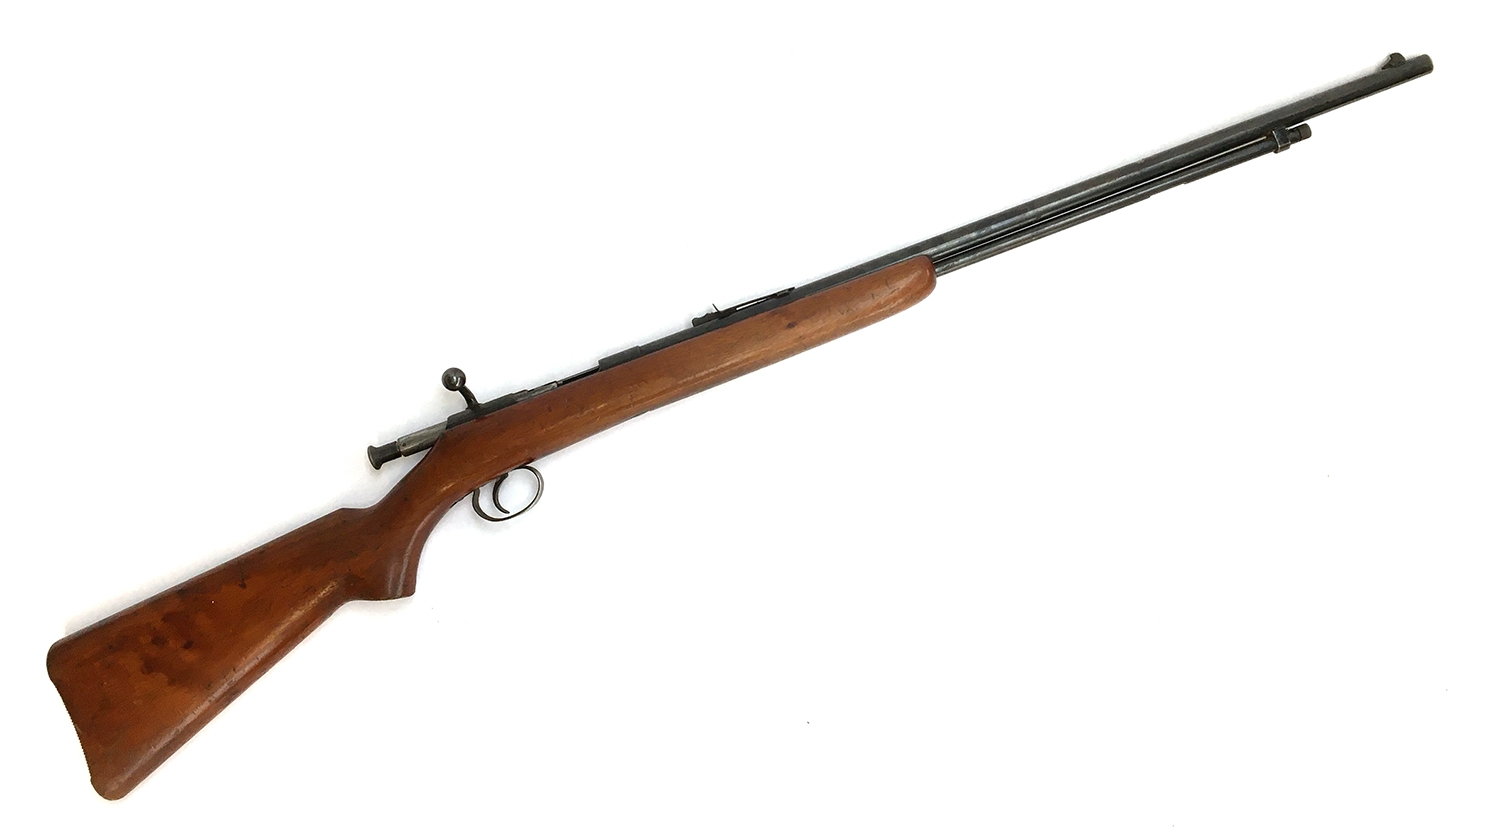 A BSA bolt action single shot 22 rifle, with open sights, ser.51367 - Image 2 of 2